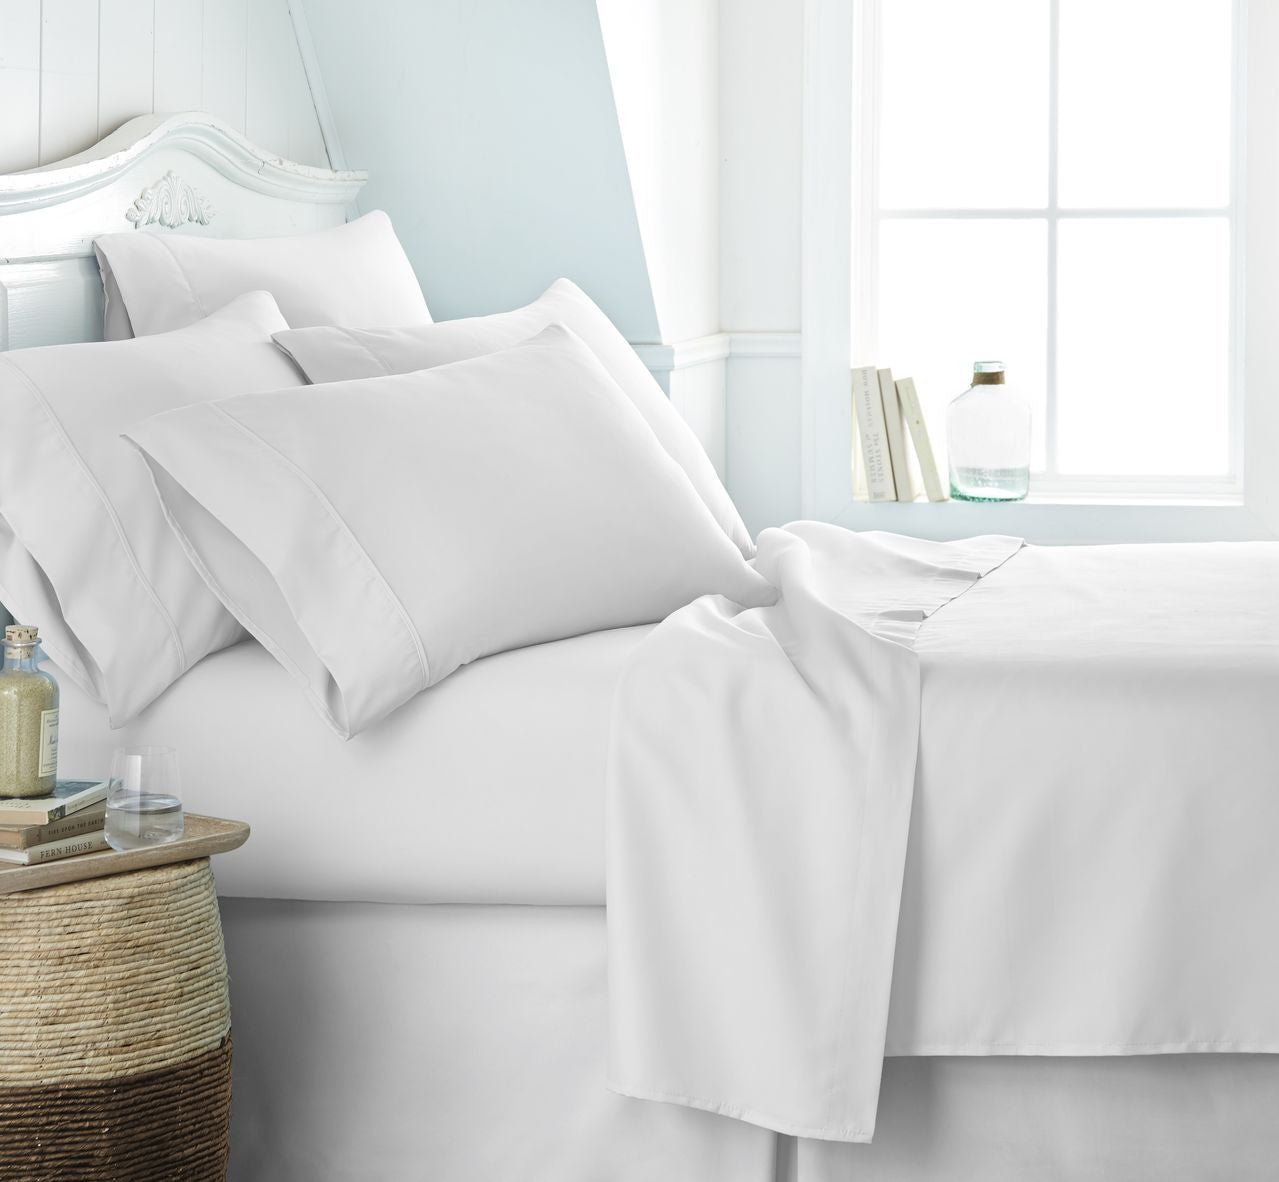 Special bed set 3 pieces 1 fitted sheet 1 flat sheet How to put a fitted sheet on a bed